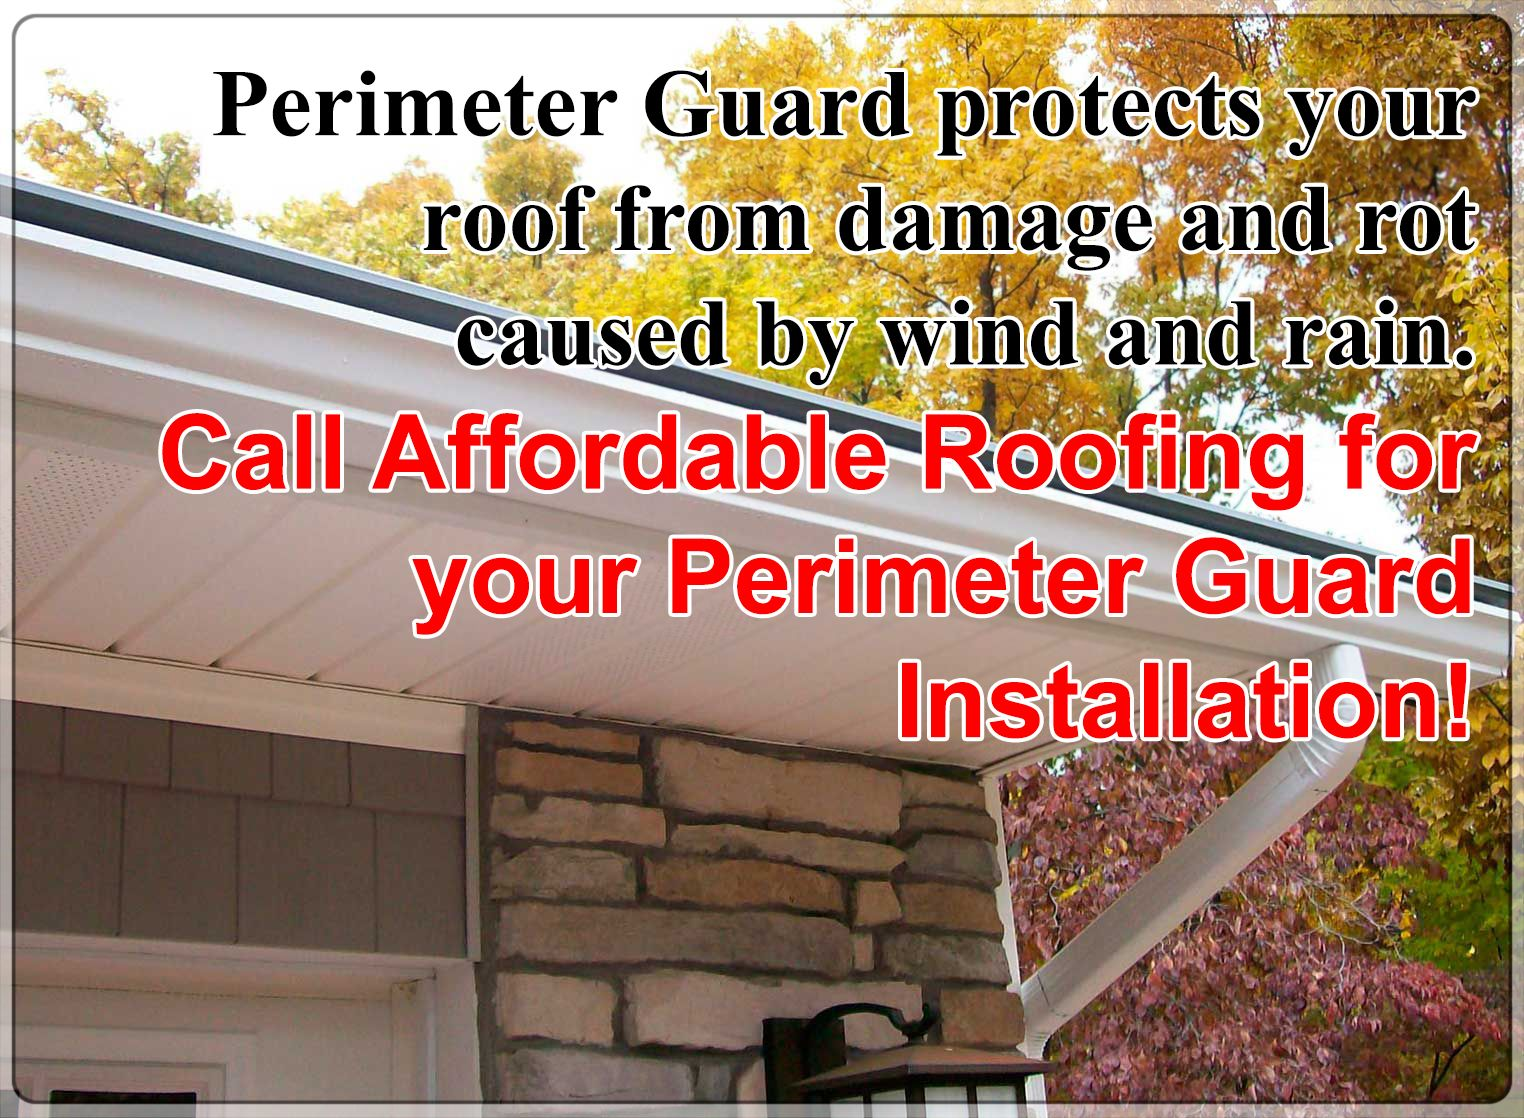 Perimeter Guard protects your roof from damage and rot caused by wind and rain. Call Affordable Roofing for your Perimeter Guard Installation! 717-953-3057 || www.AffordableRoofingYorkPA.com